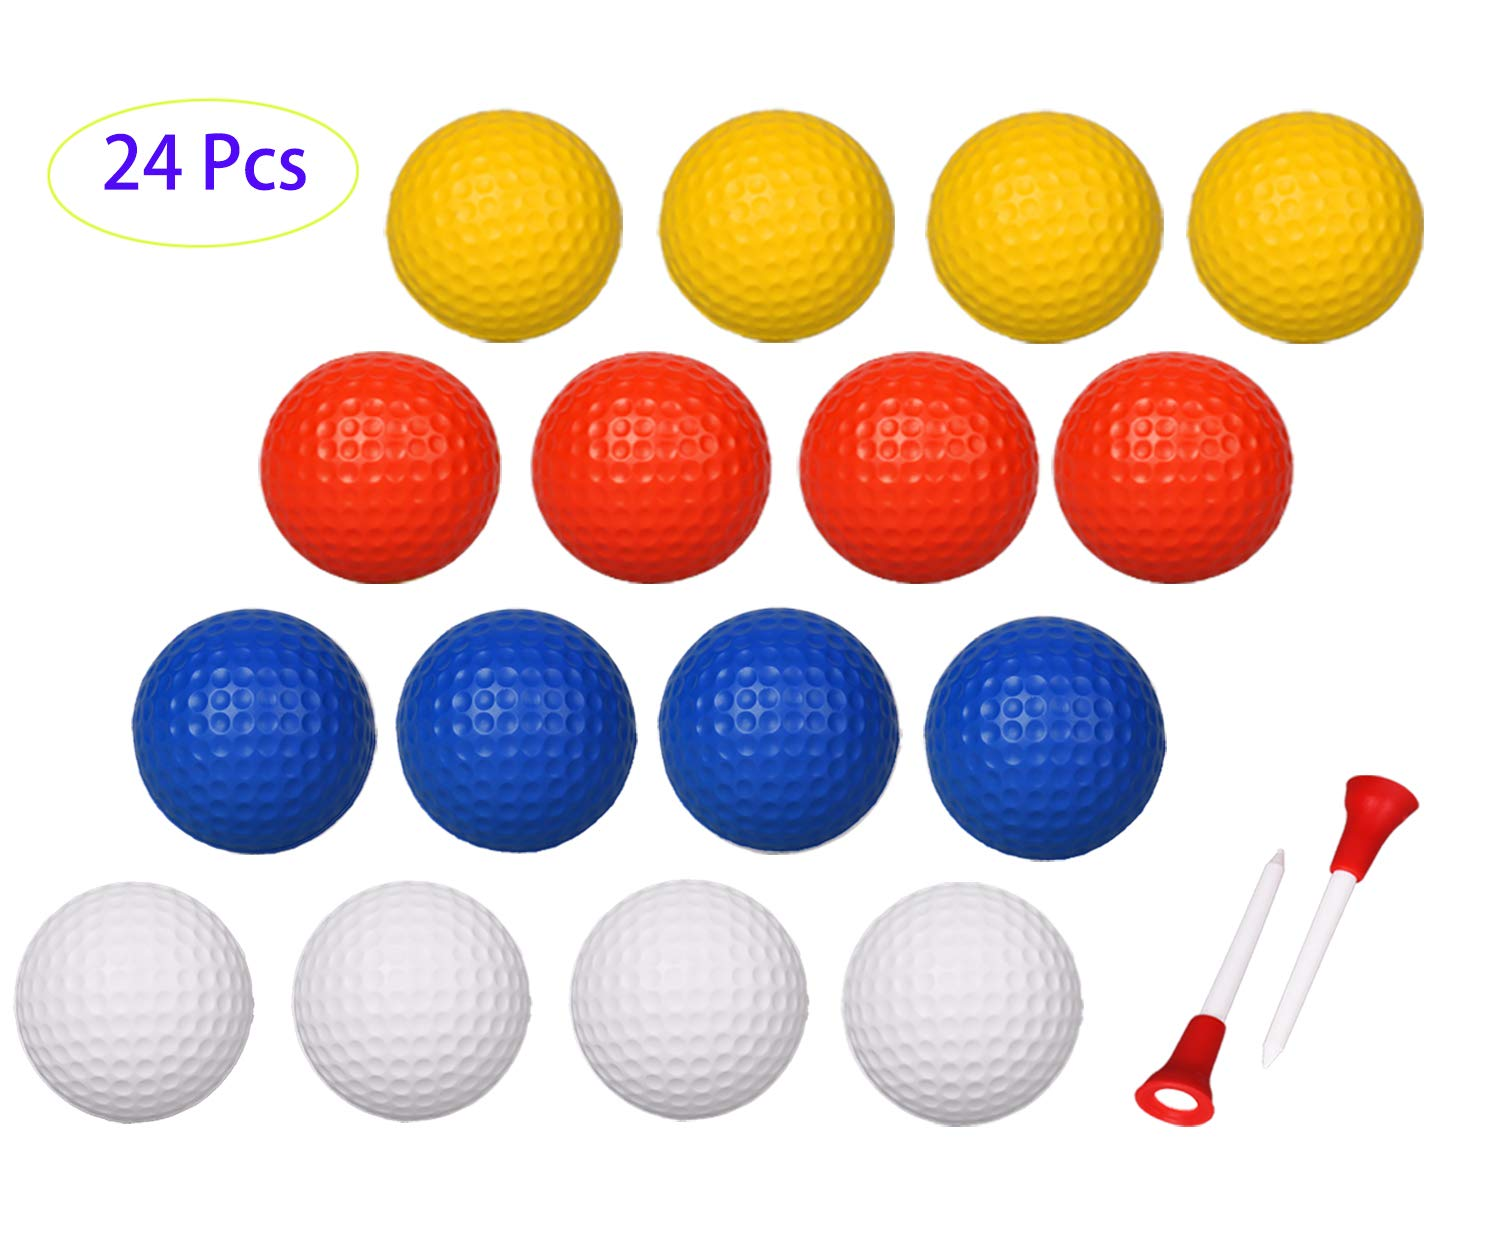 Adwikoso 24 Pcs Practice Golf Balls Foam Soft Elastic Golf Balls, Indoor Putting Green Outdoor Golf Training Aid Balls 4 Colors with 2 Golf Ball Tees by Adwikoso